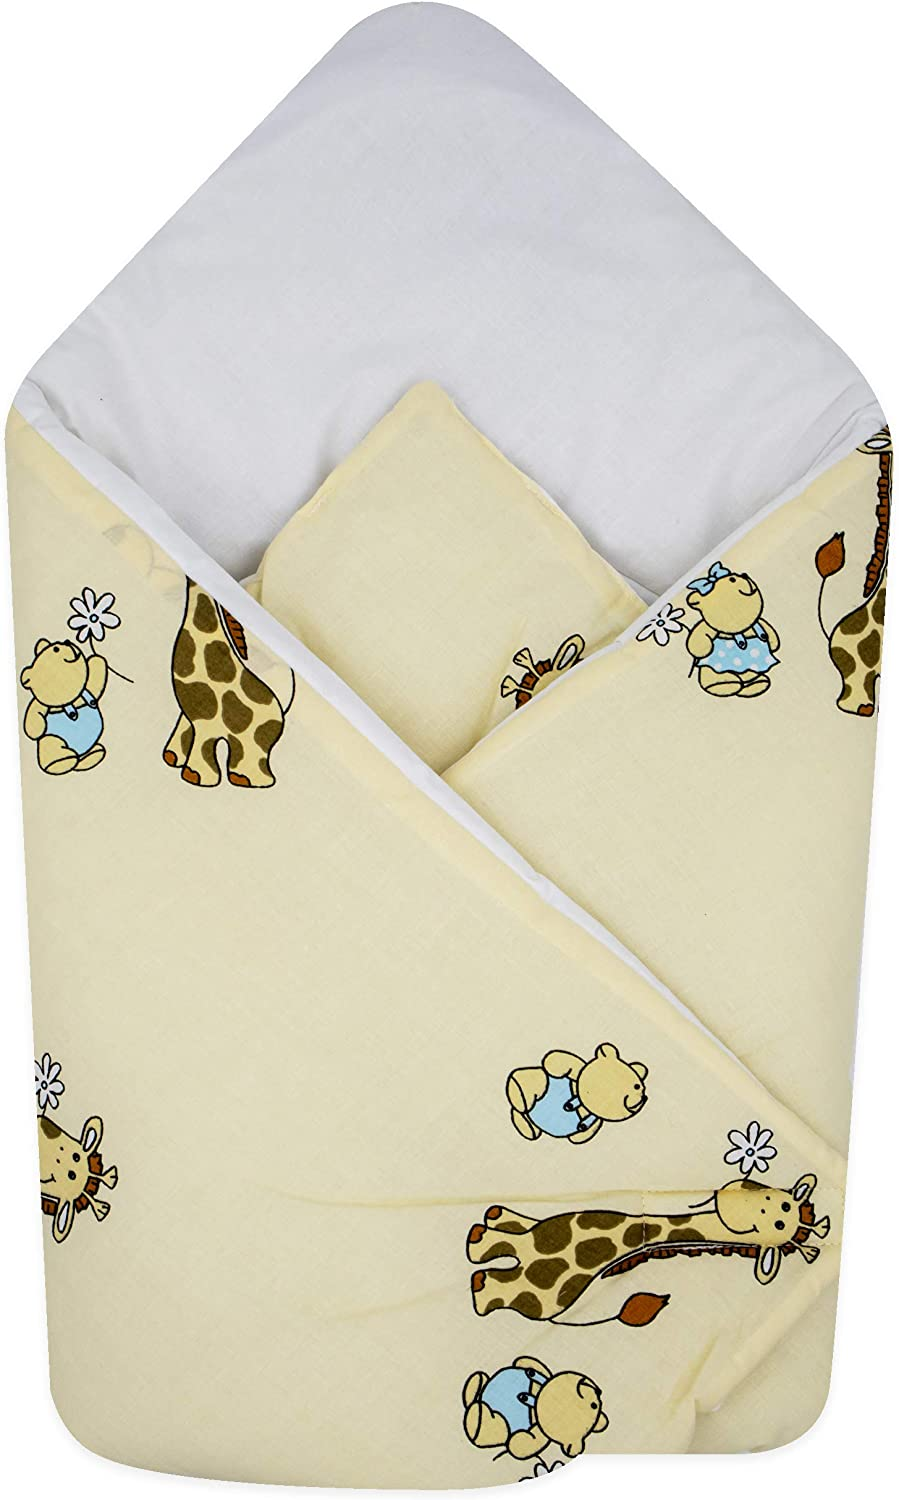 BlueberryShop Cotton Baby Swaddle Wrap Car Seat Blanket Blue Bear Perfect for Prams /& Cots Sleeping Bag for Newborns Intended for Kids Aged 0-3 Months 78 x 78 cm